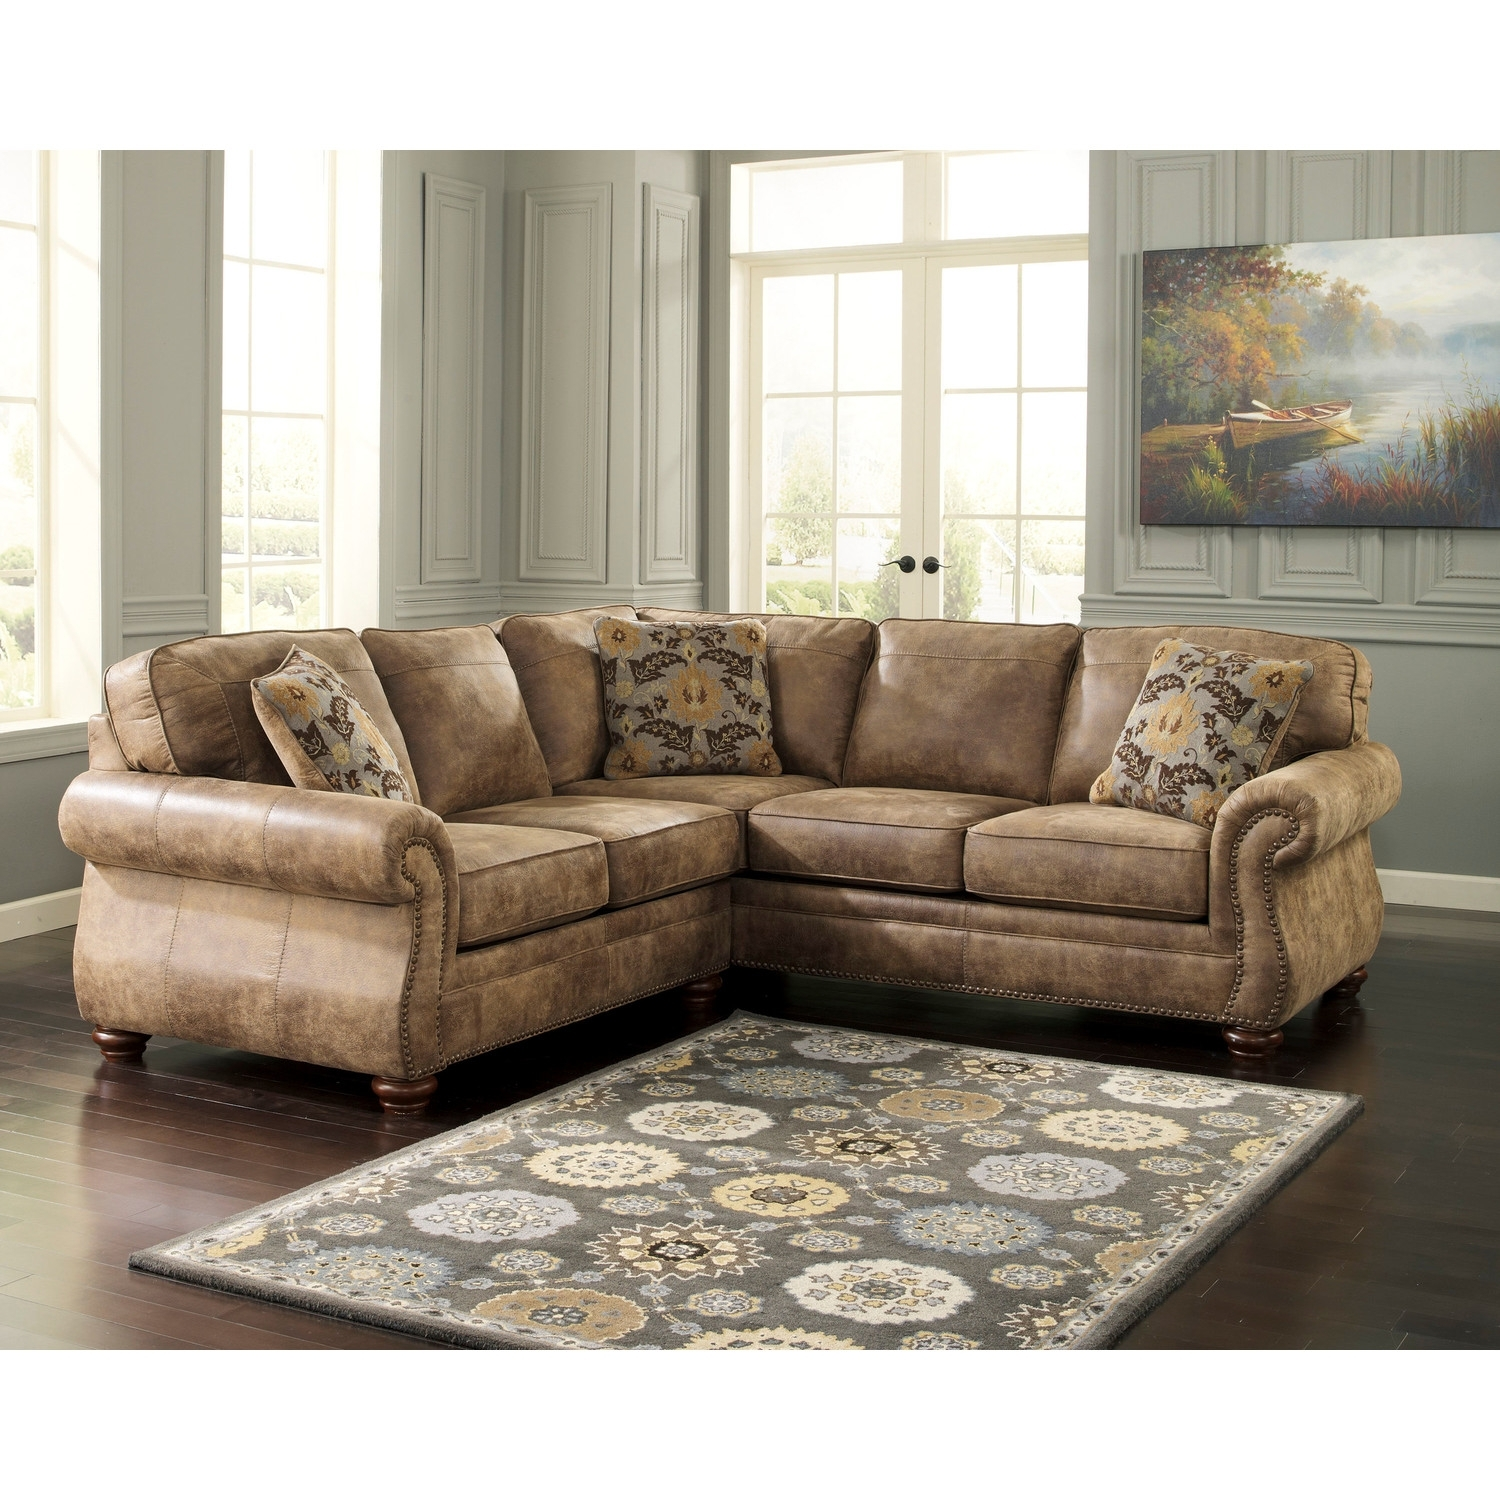 Inspirational Sectional Sofas Sacramento 83 With Additional regarding Sacramento Sectional Sofas (Image 2 of 10)